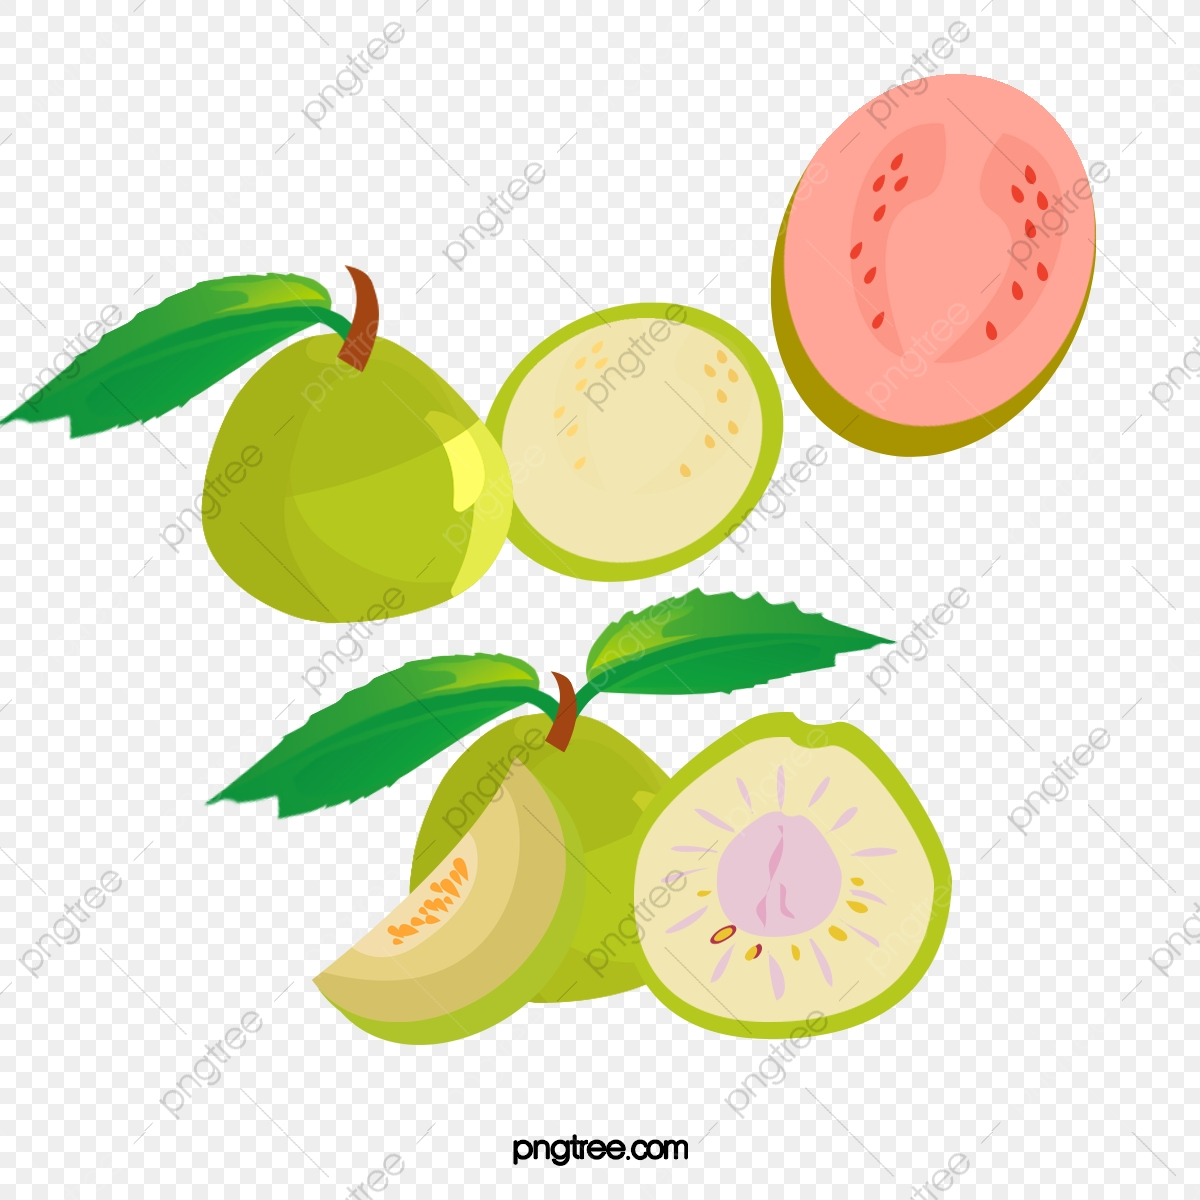 Guava Fruit Hd Images Free Download